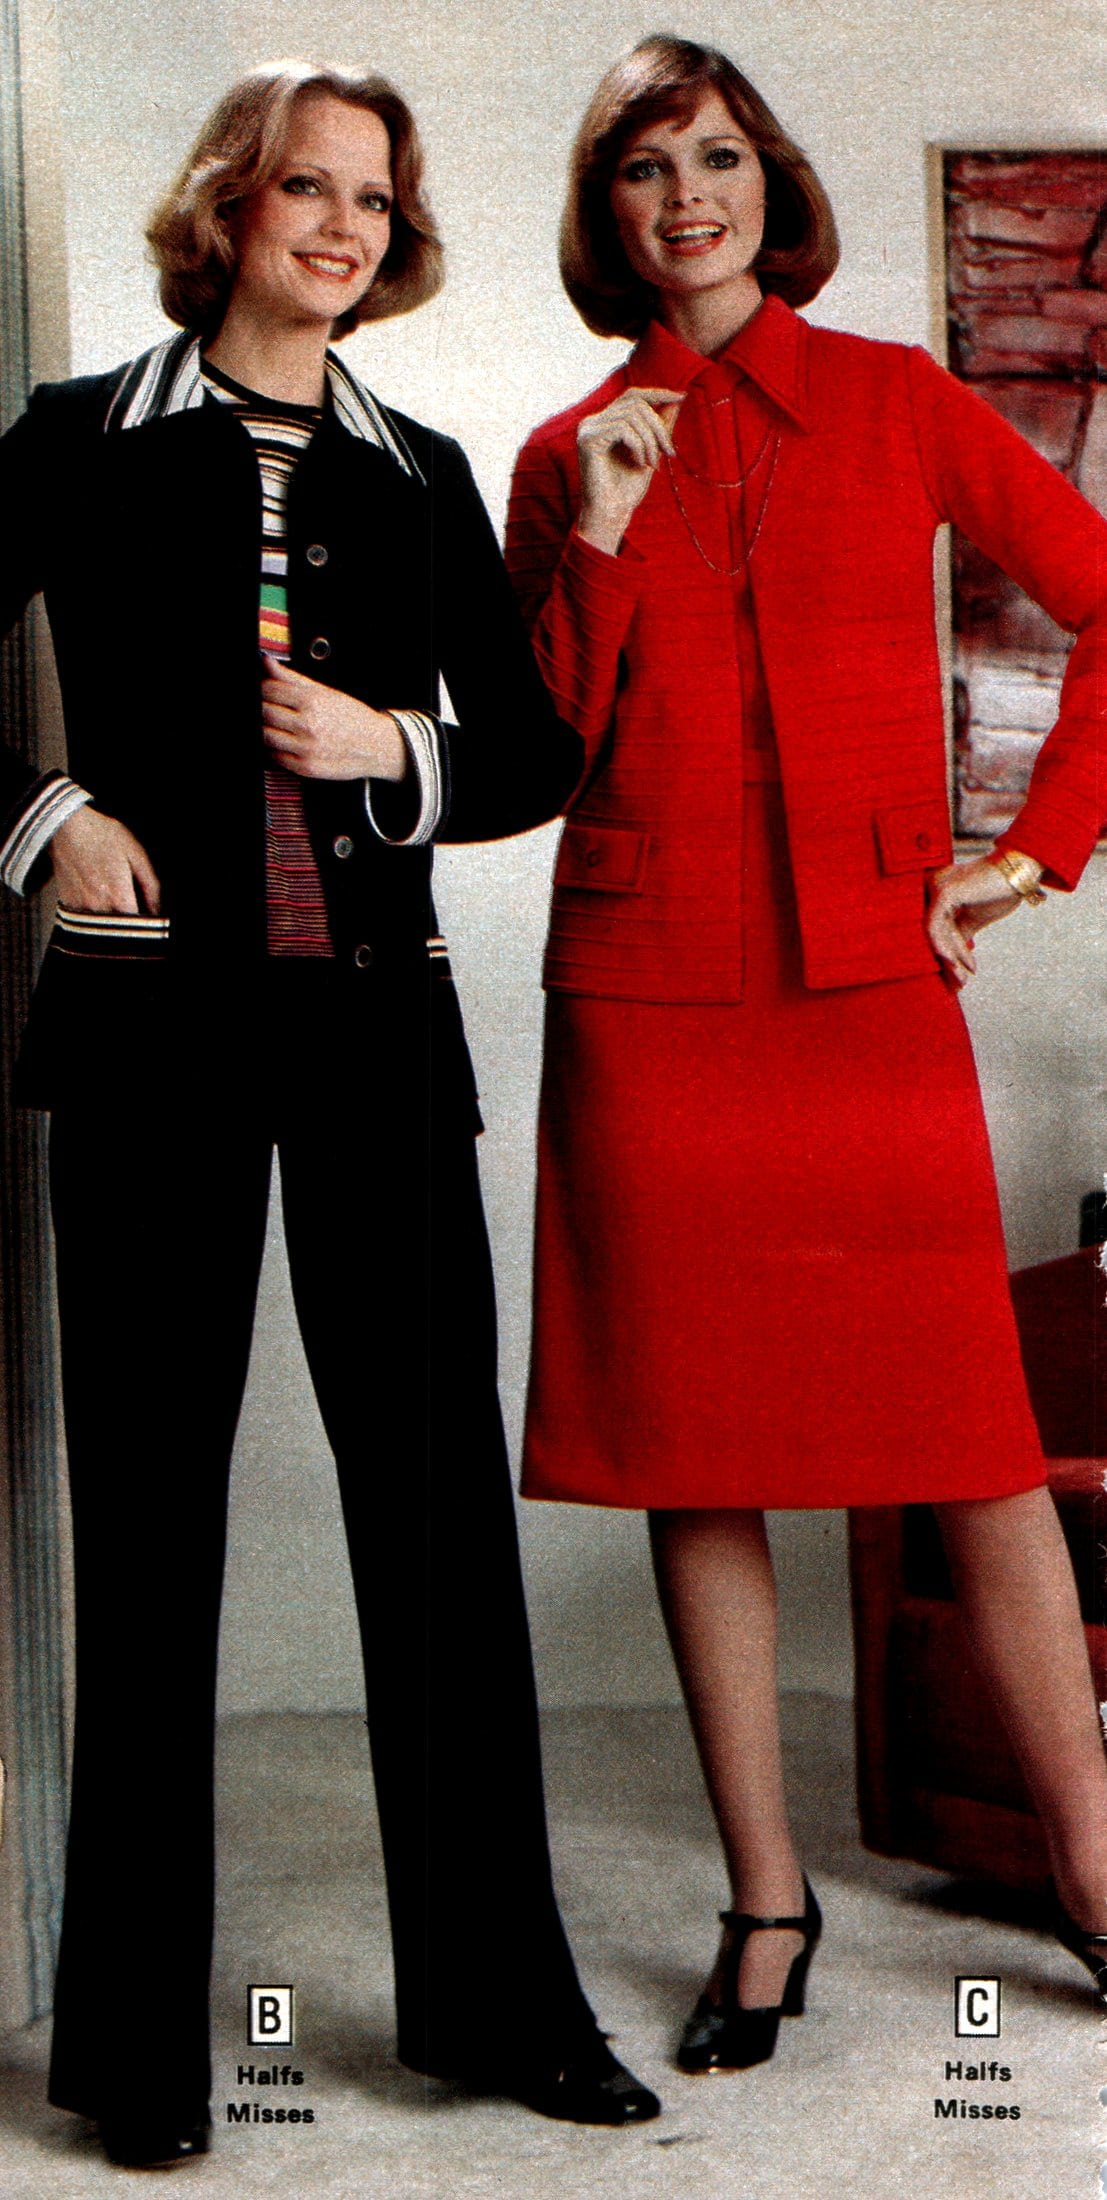 Suits for women from 1979 - Black and red